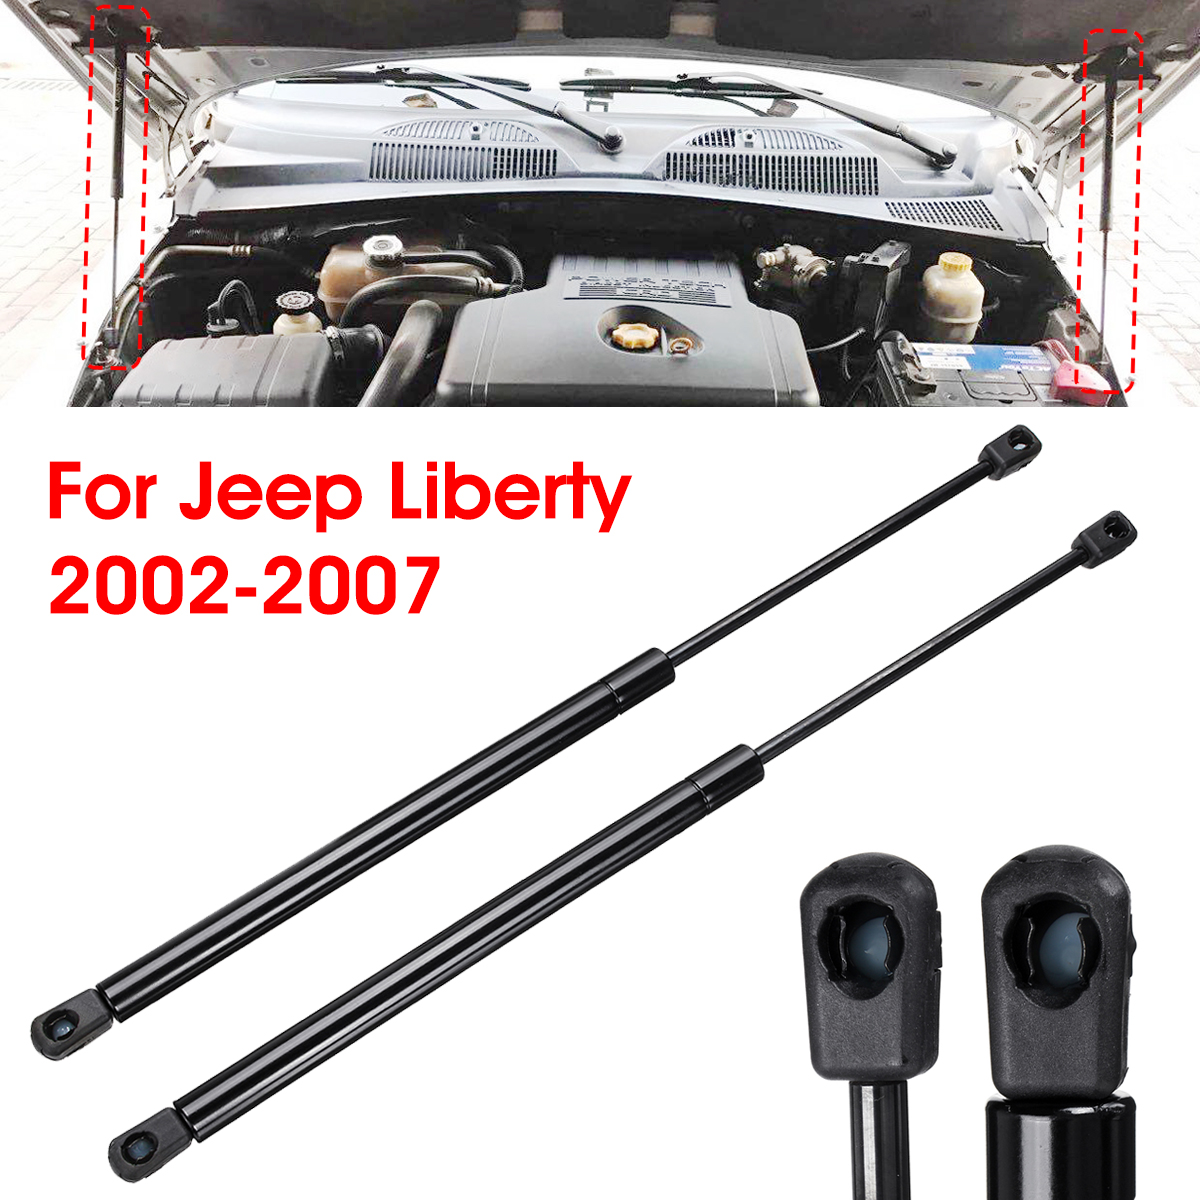 2 Front Hood Lift Supports Struts Shocks Gas Springs For Jeep Liberty 2002-2007